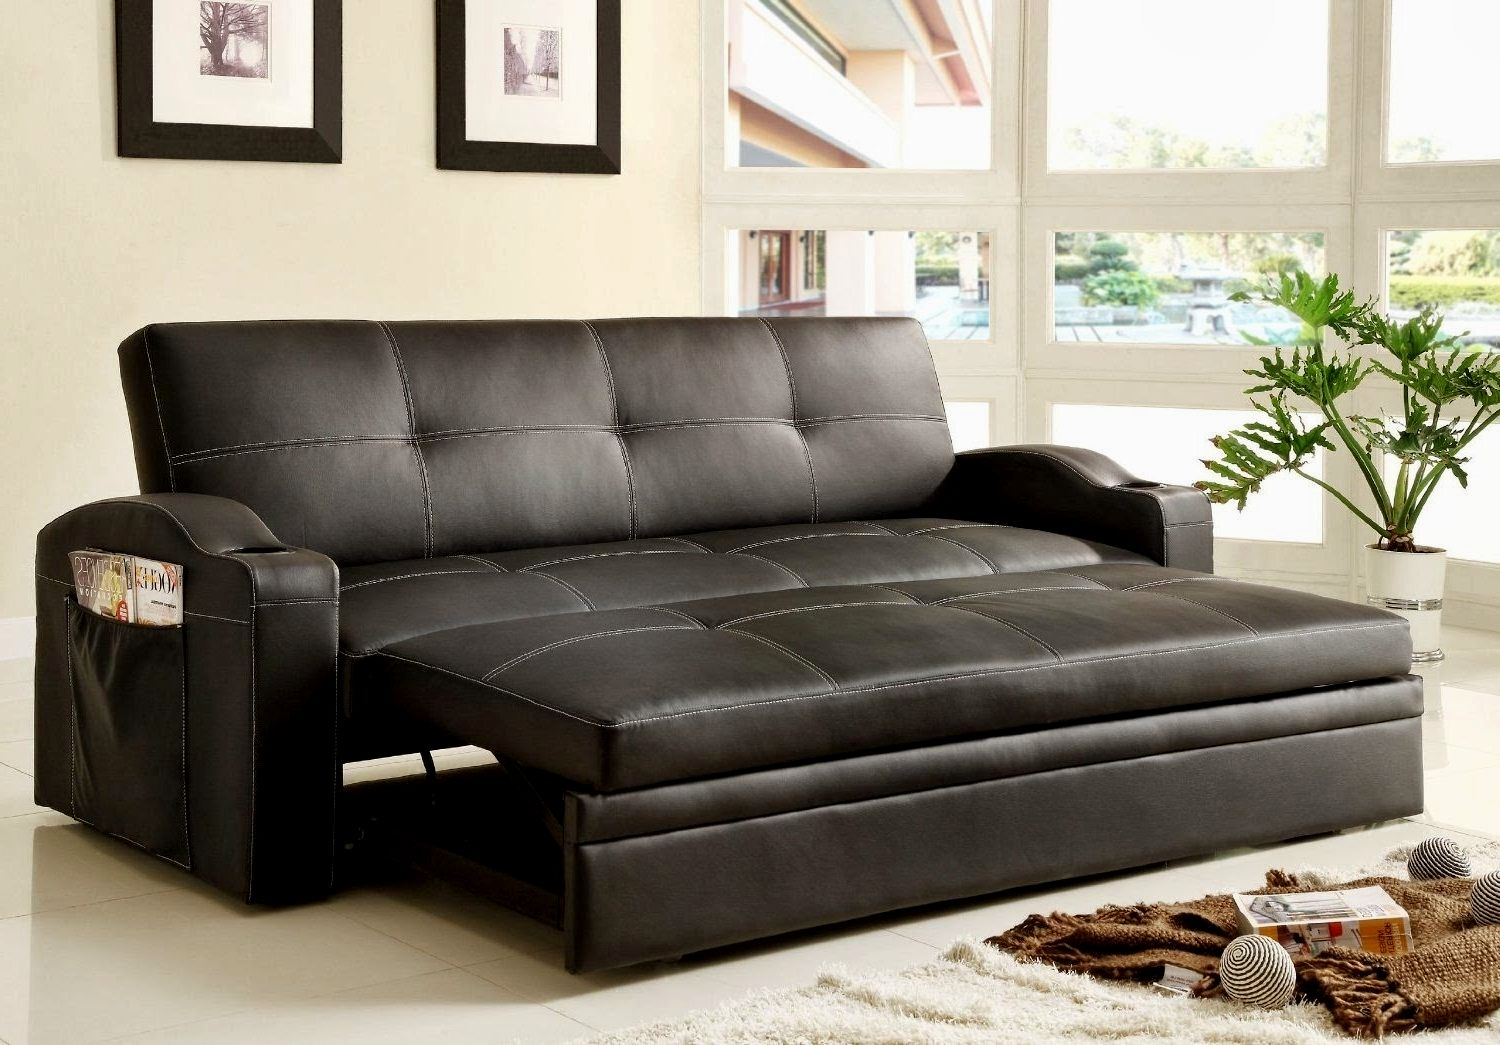 best of most comfortable sleeper sofa online-Lovely Most Comfortable Sleeper sofa Architecture